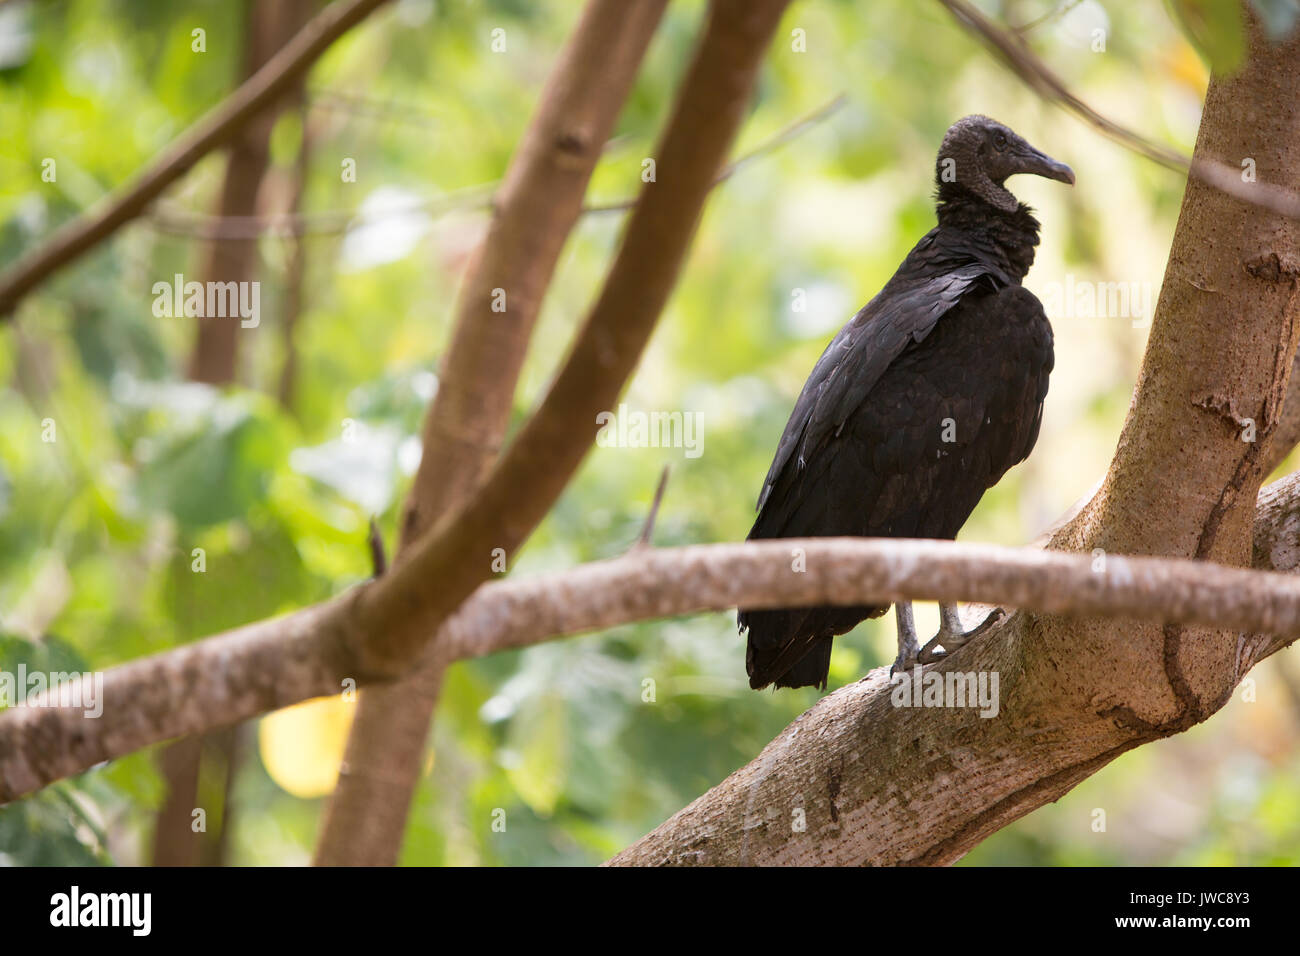 In Isla Coiba National Park,a black vulture sits perched on a tree limb. - Stock Image